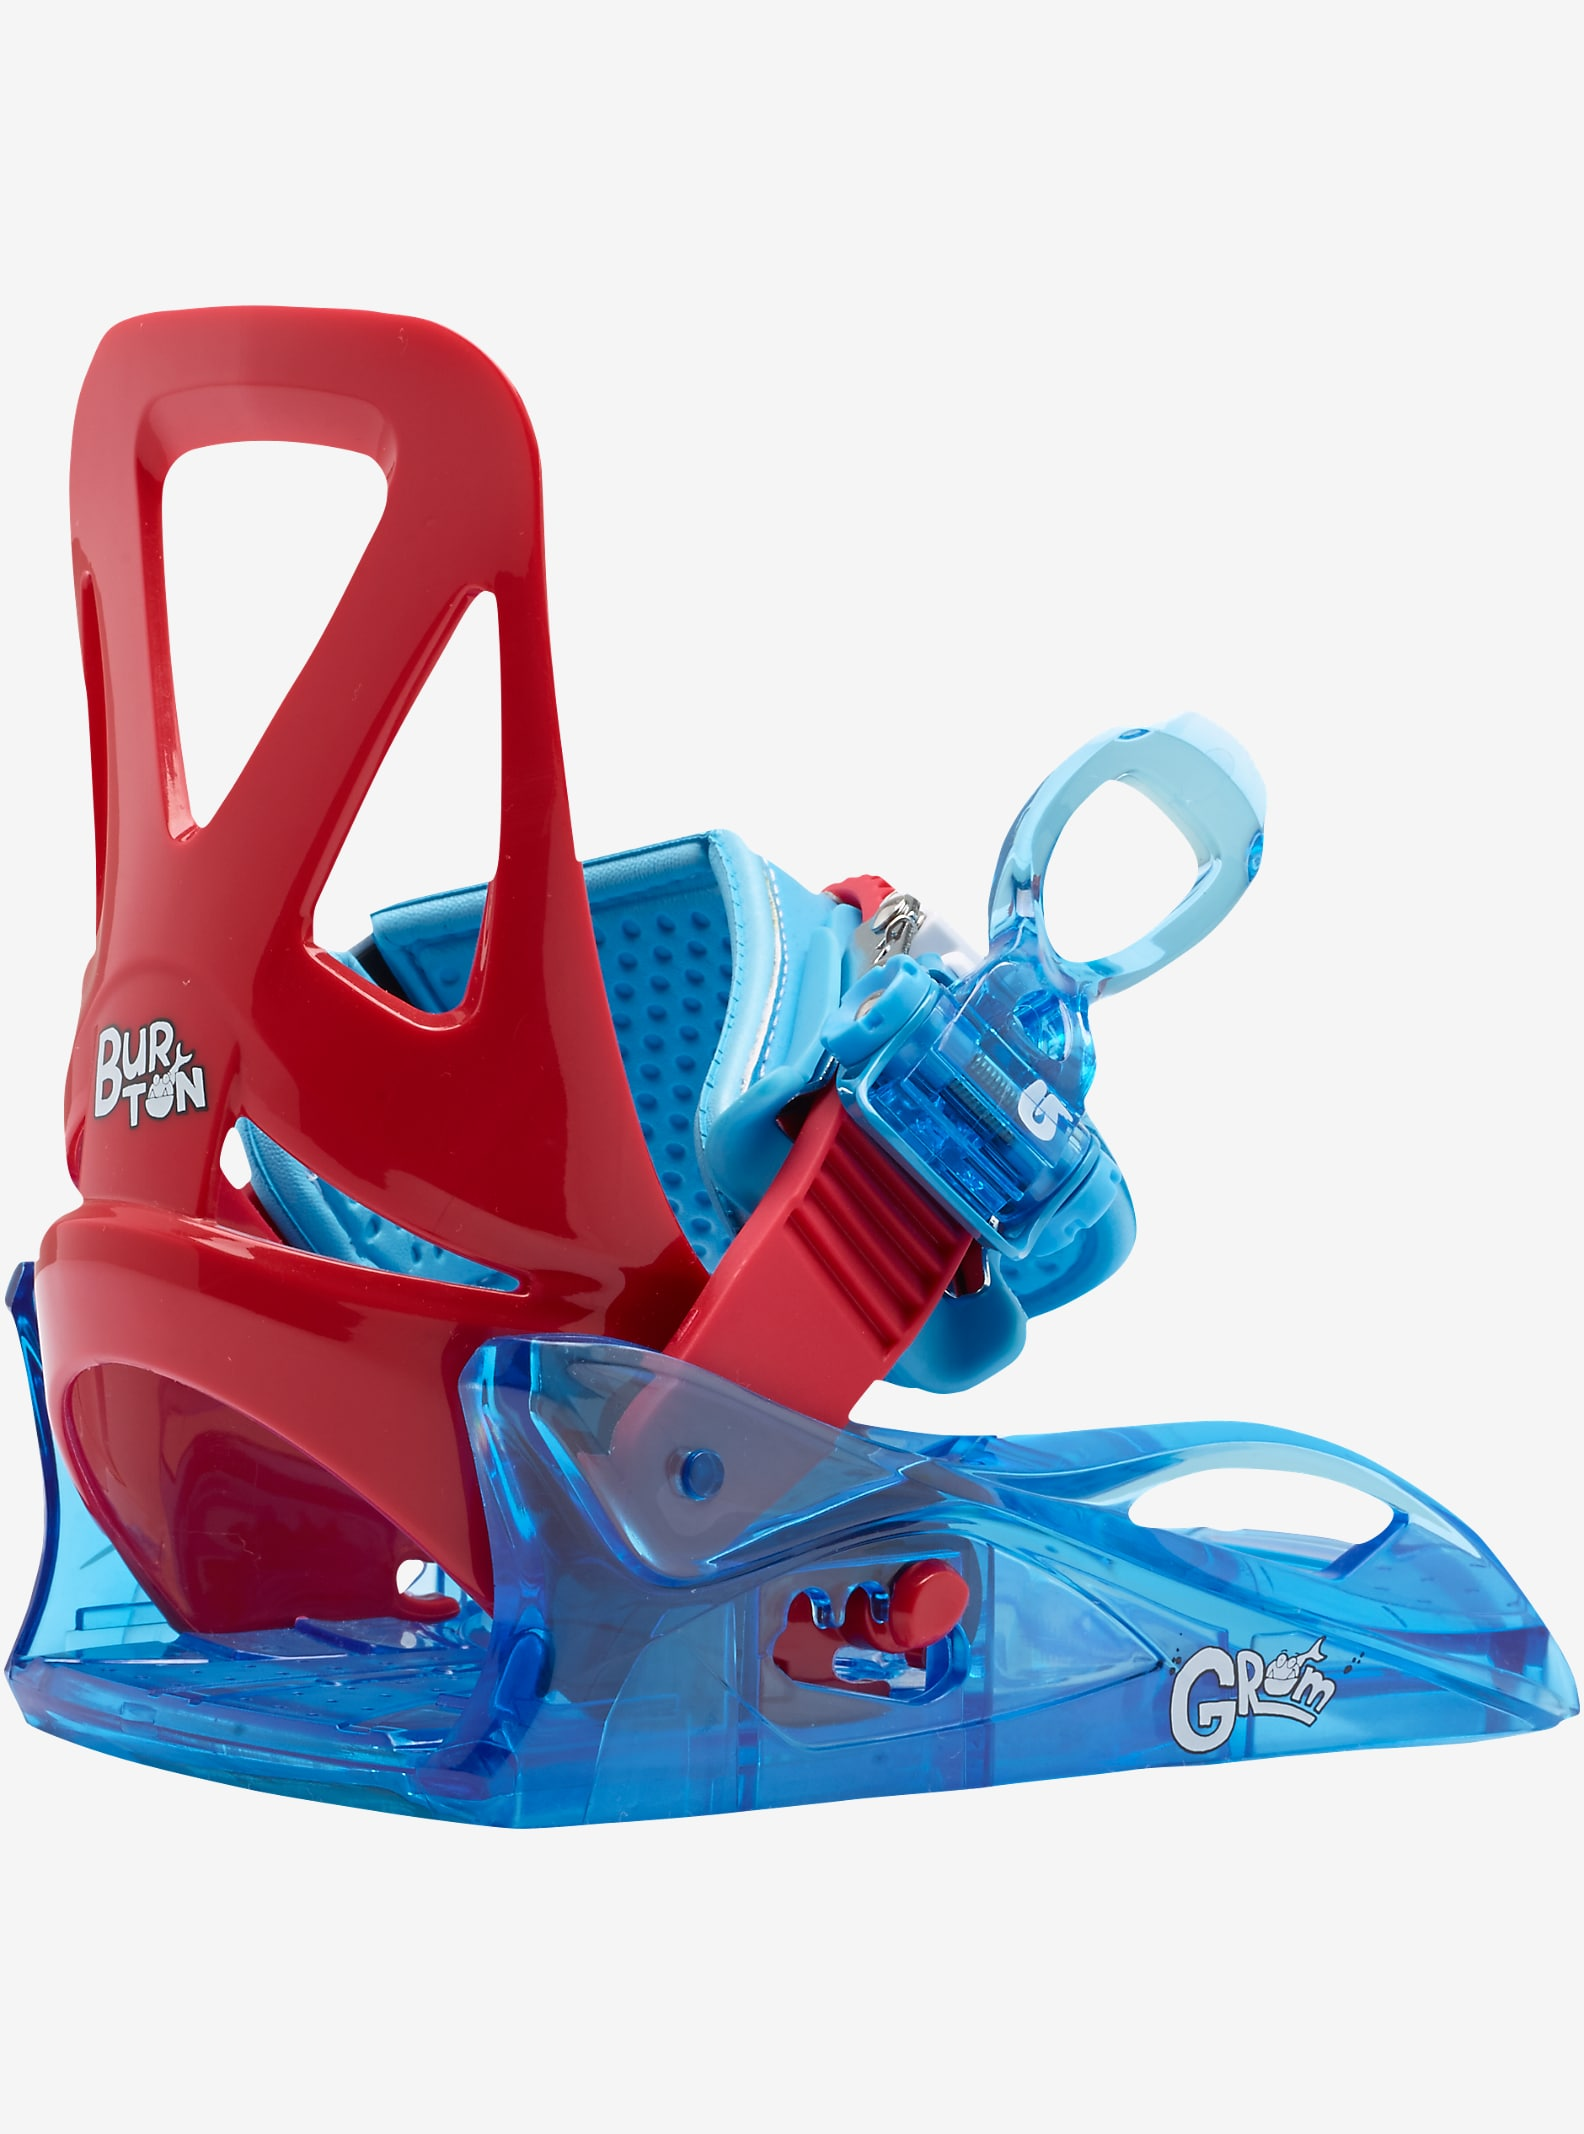 Burton Grom Snowboard Binding shown in Red / Blue